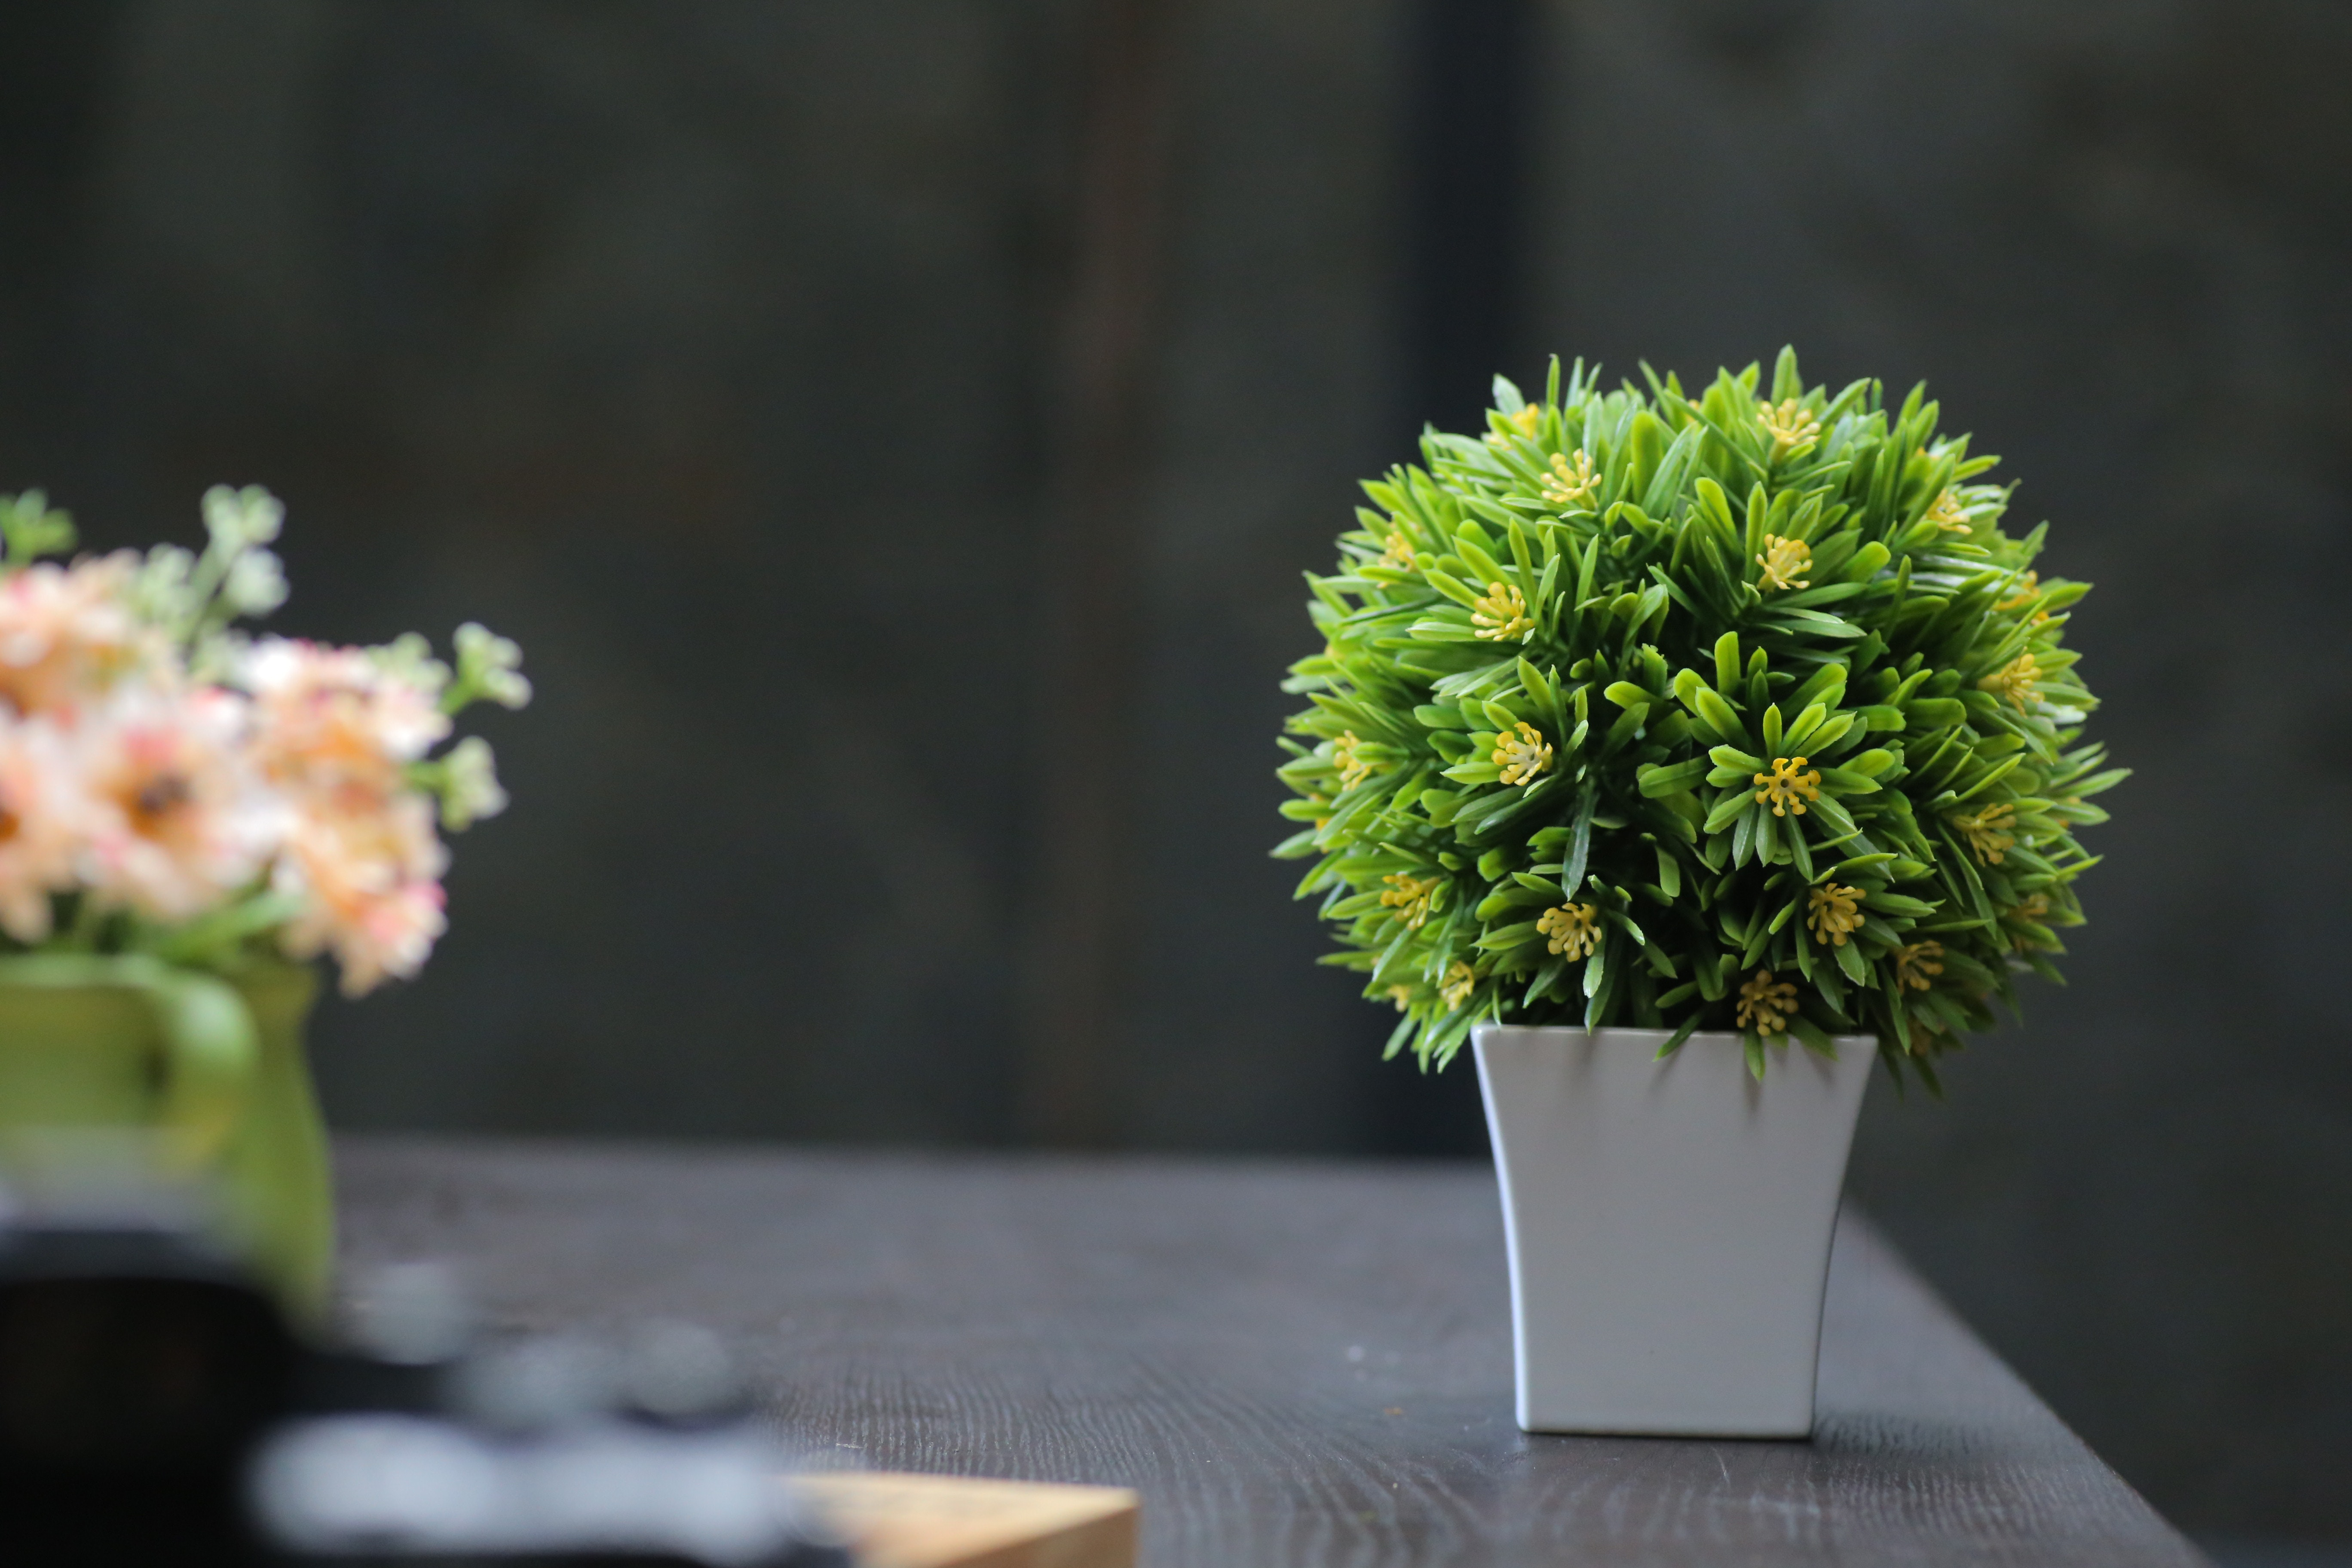 Selective Focus Photography of Green Leafed Plants & 1000+ Interesting Flower Pot Photos · Pexels · Free Stock Photos